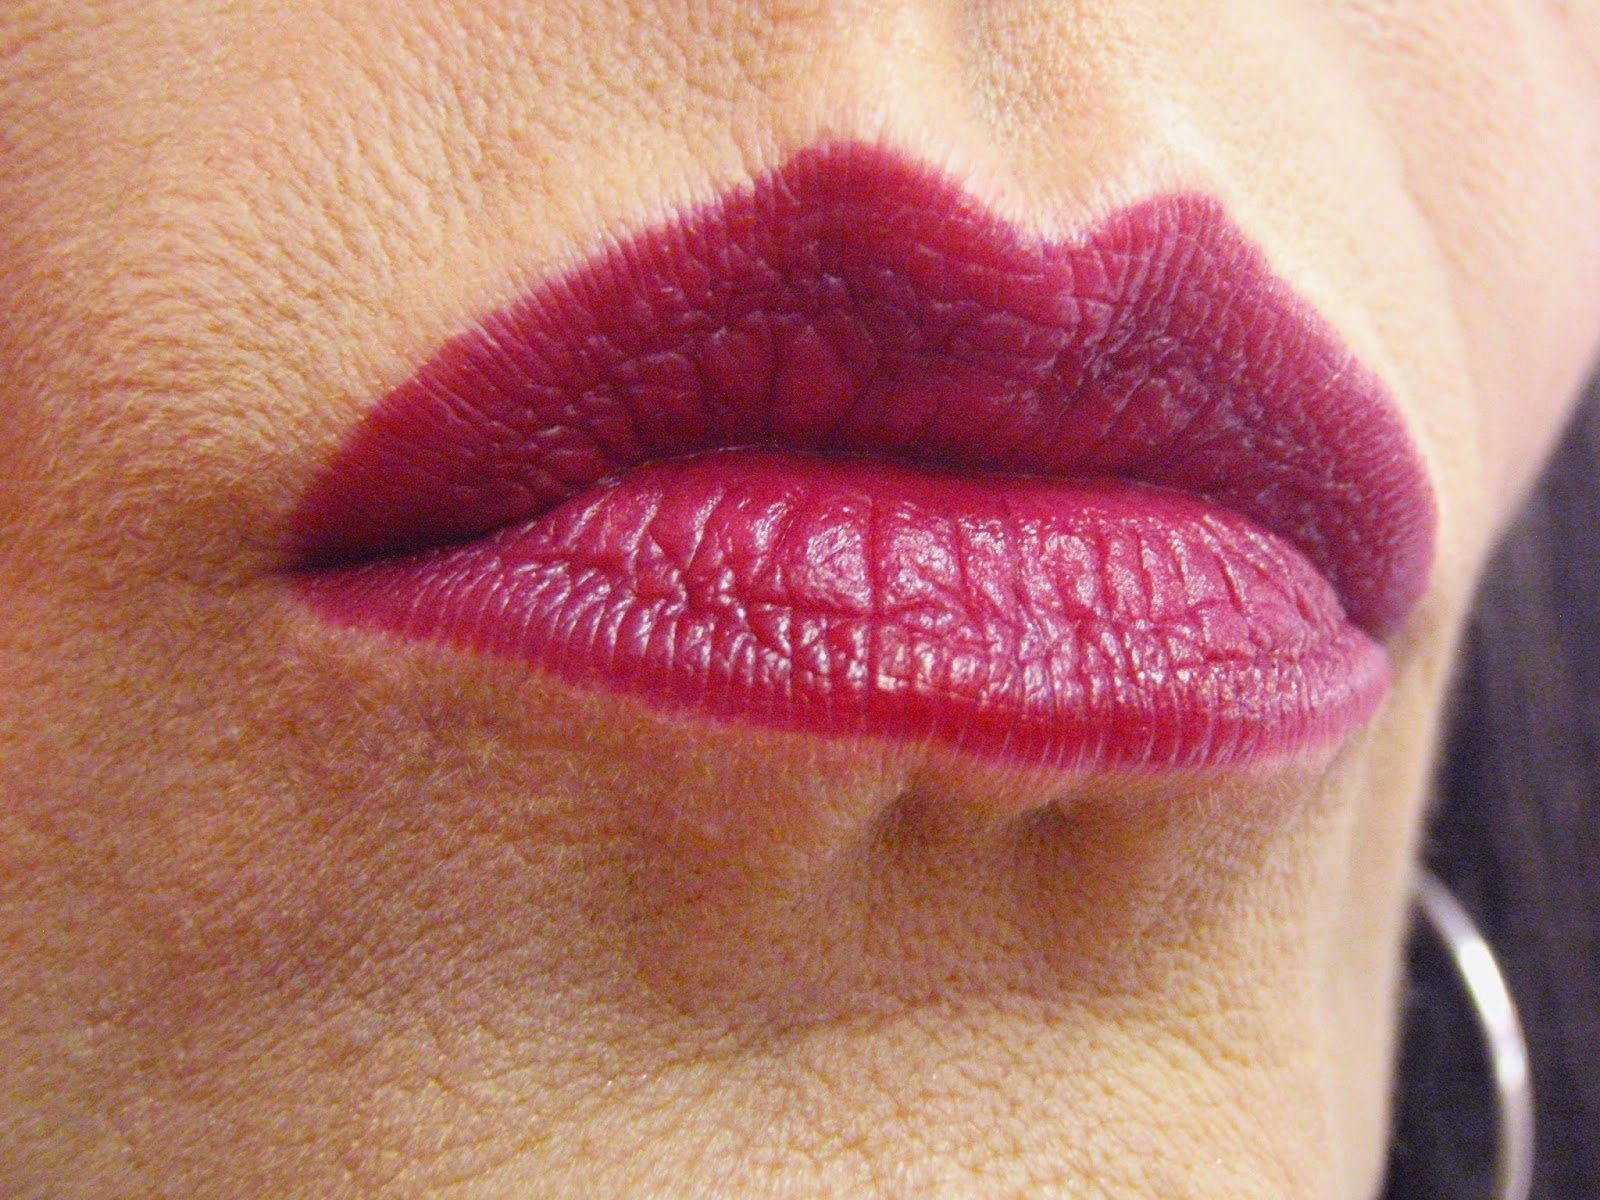 josie maran lipstain on lips